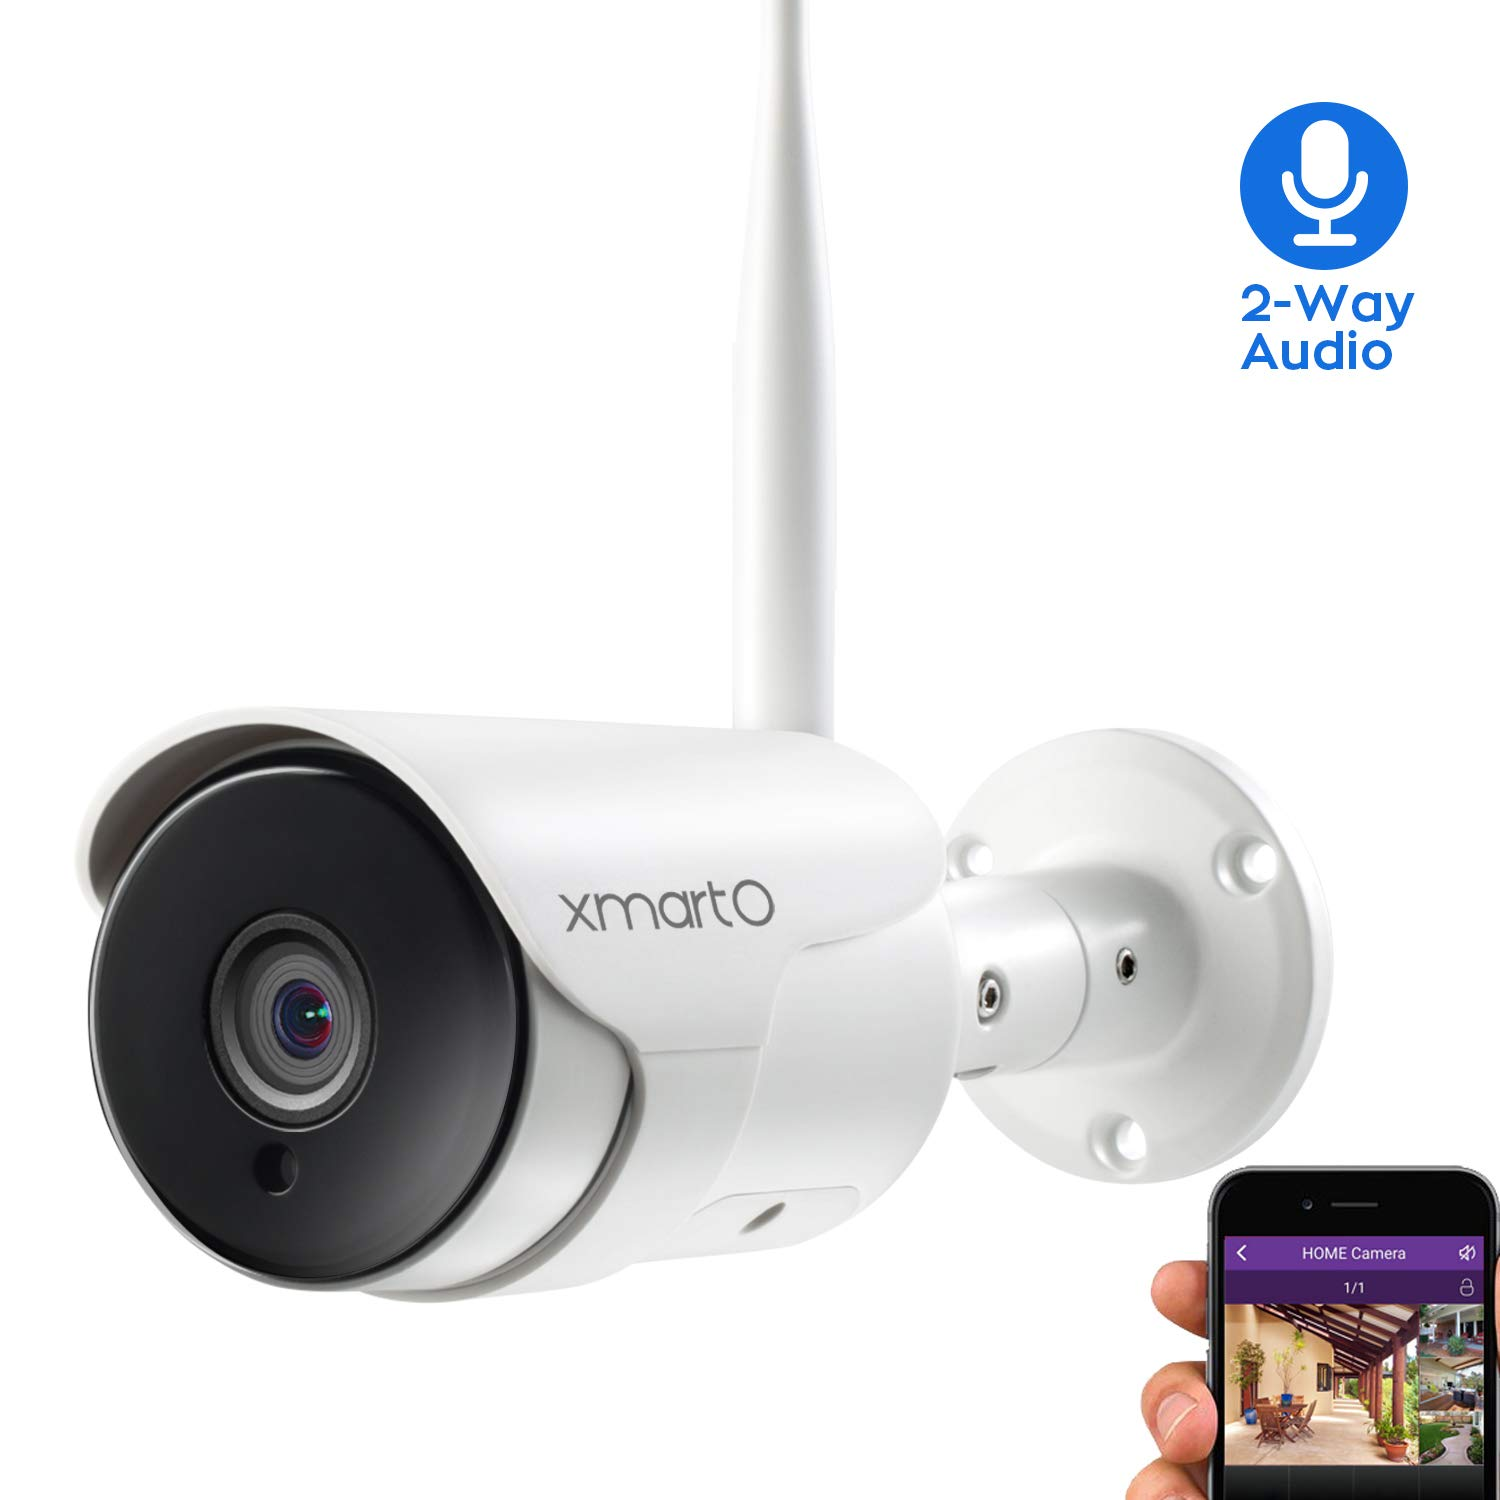 xmartO XMARTO 1080P Full HD Wireless Security Camera, Two-Way Audio, WiFi IP Home Surveillance Bullet Camera with Night Vision, Remote Access, IP65 Weather-Resistant, Motion Detection Alert